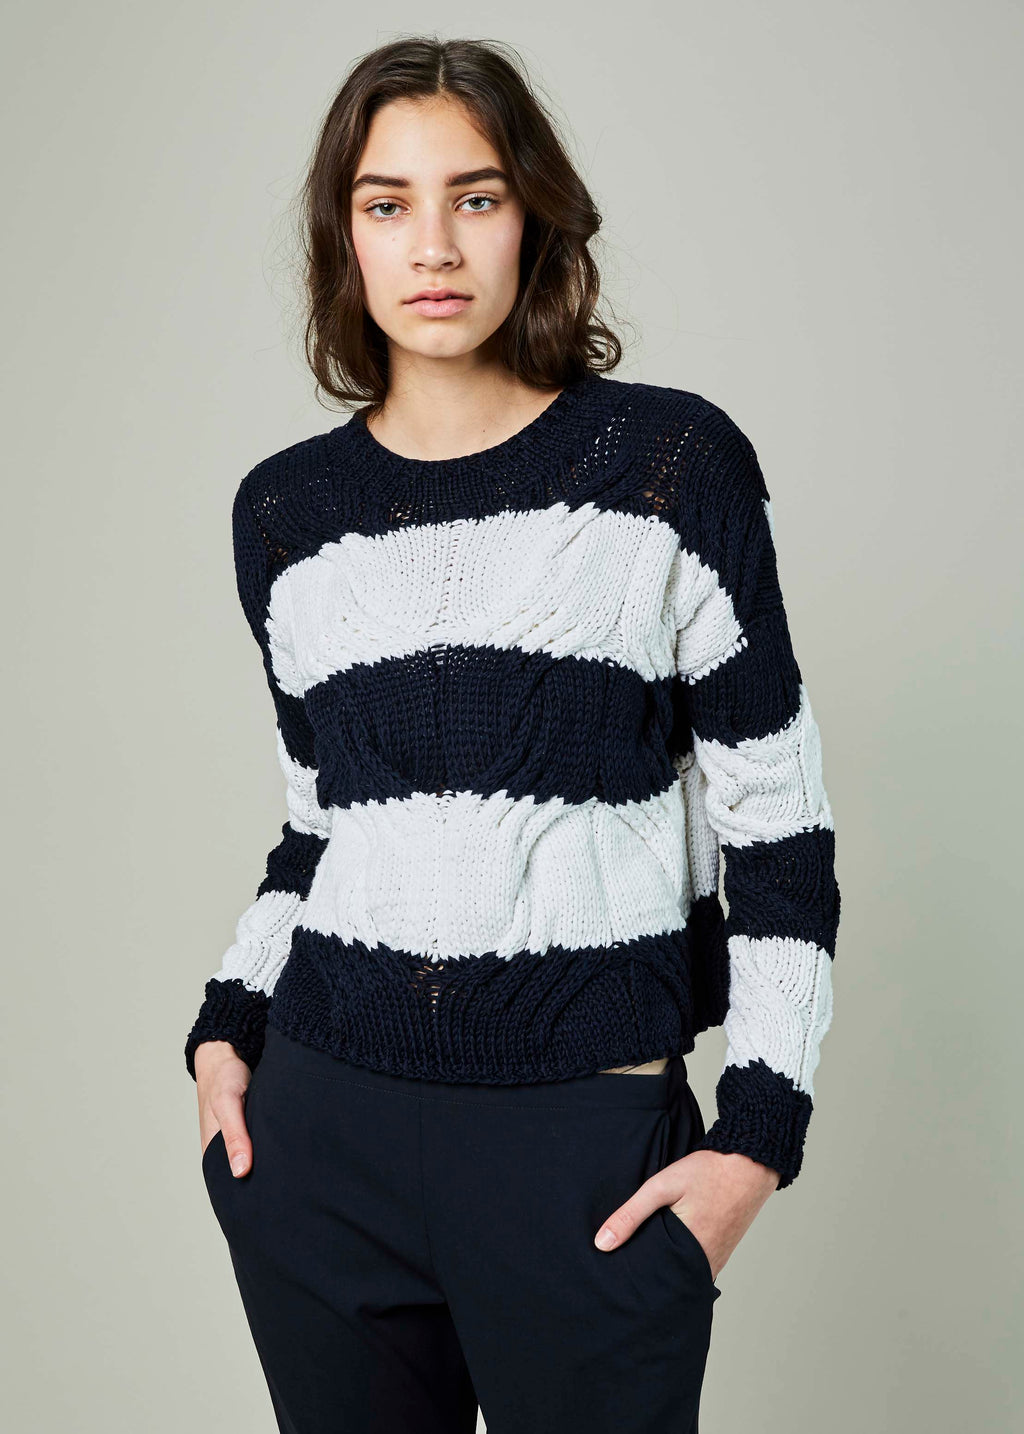 Rugby Stripe Cable Knit Sweater